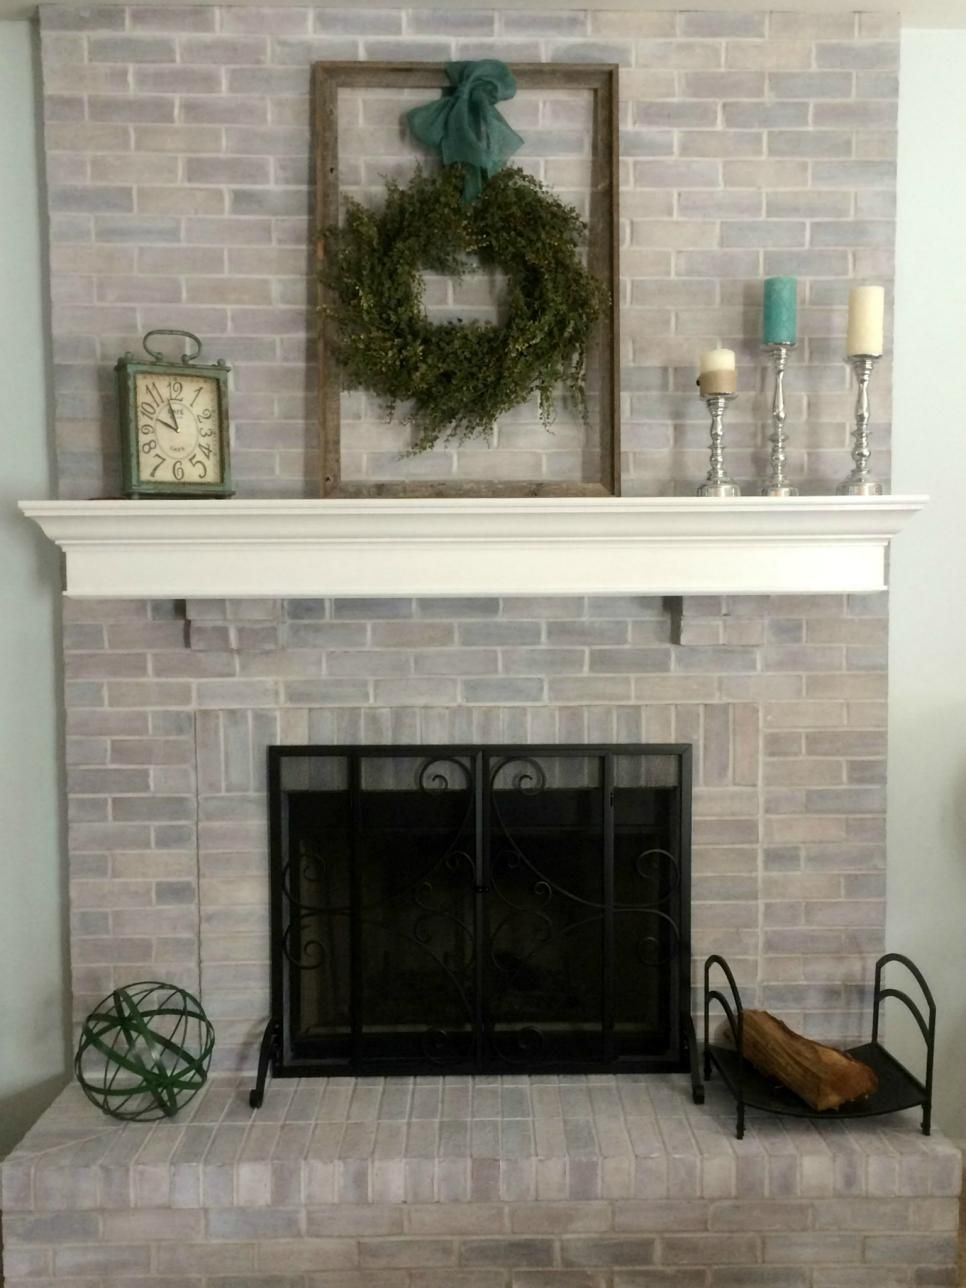 Hgtv Has 15 Stylish Ideas For Updating A Fireplace From Easy Diy Remodels To Larger